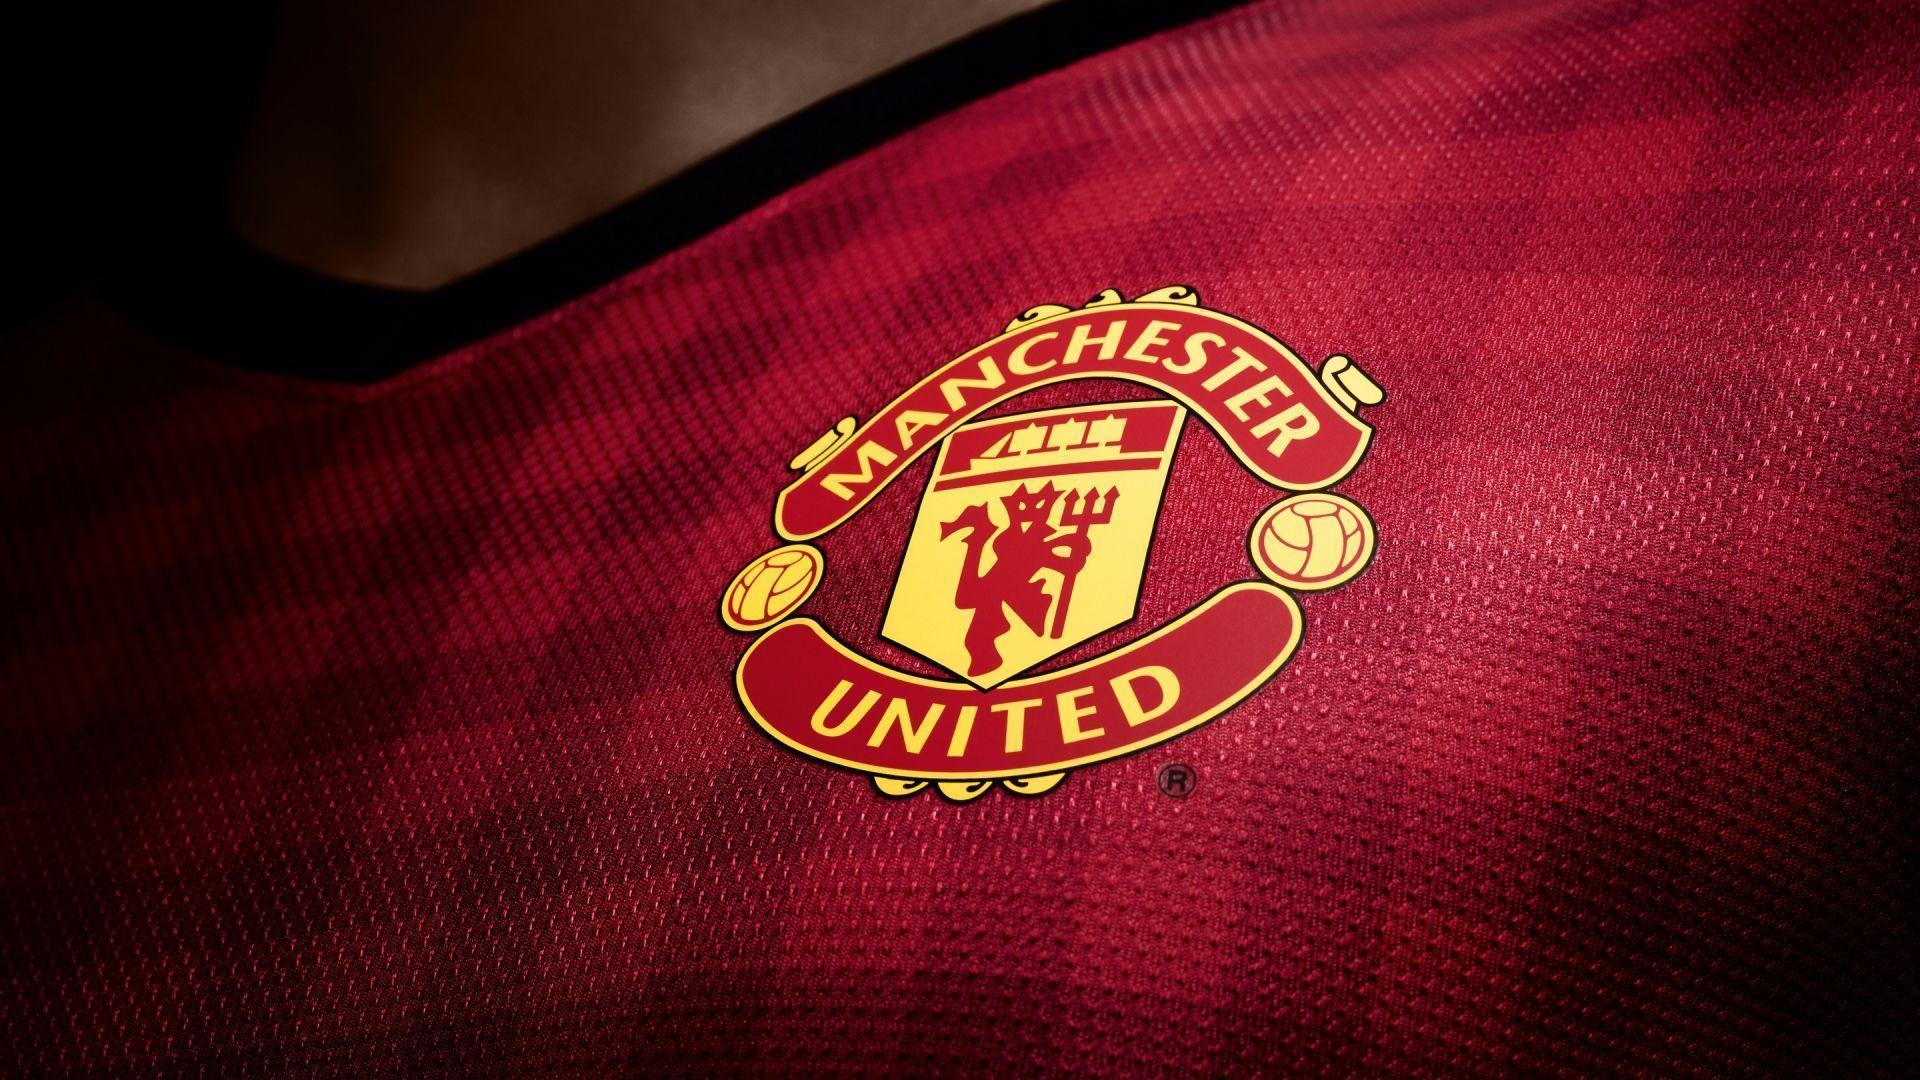 Full HD 1080p Manchester united Wallpapers HD, Desktop Backgrounds ...